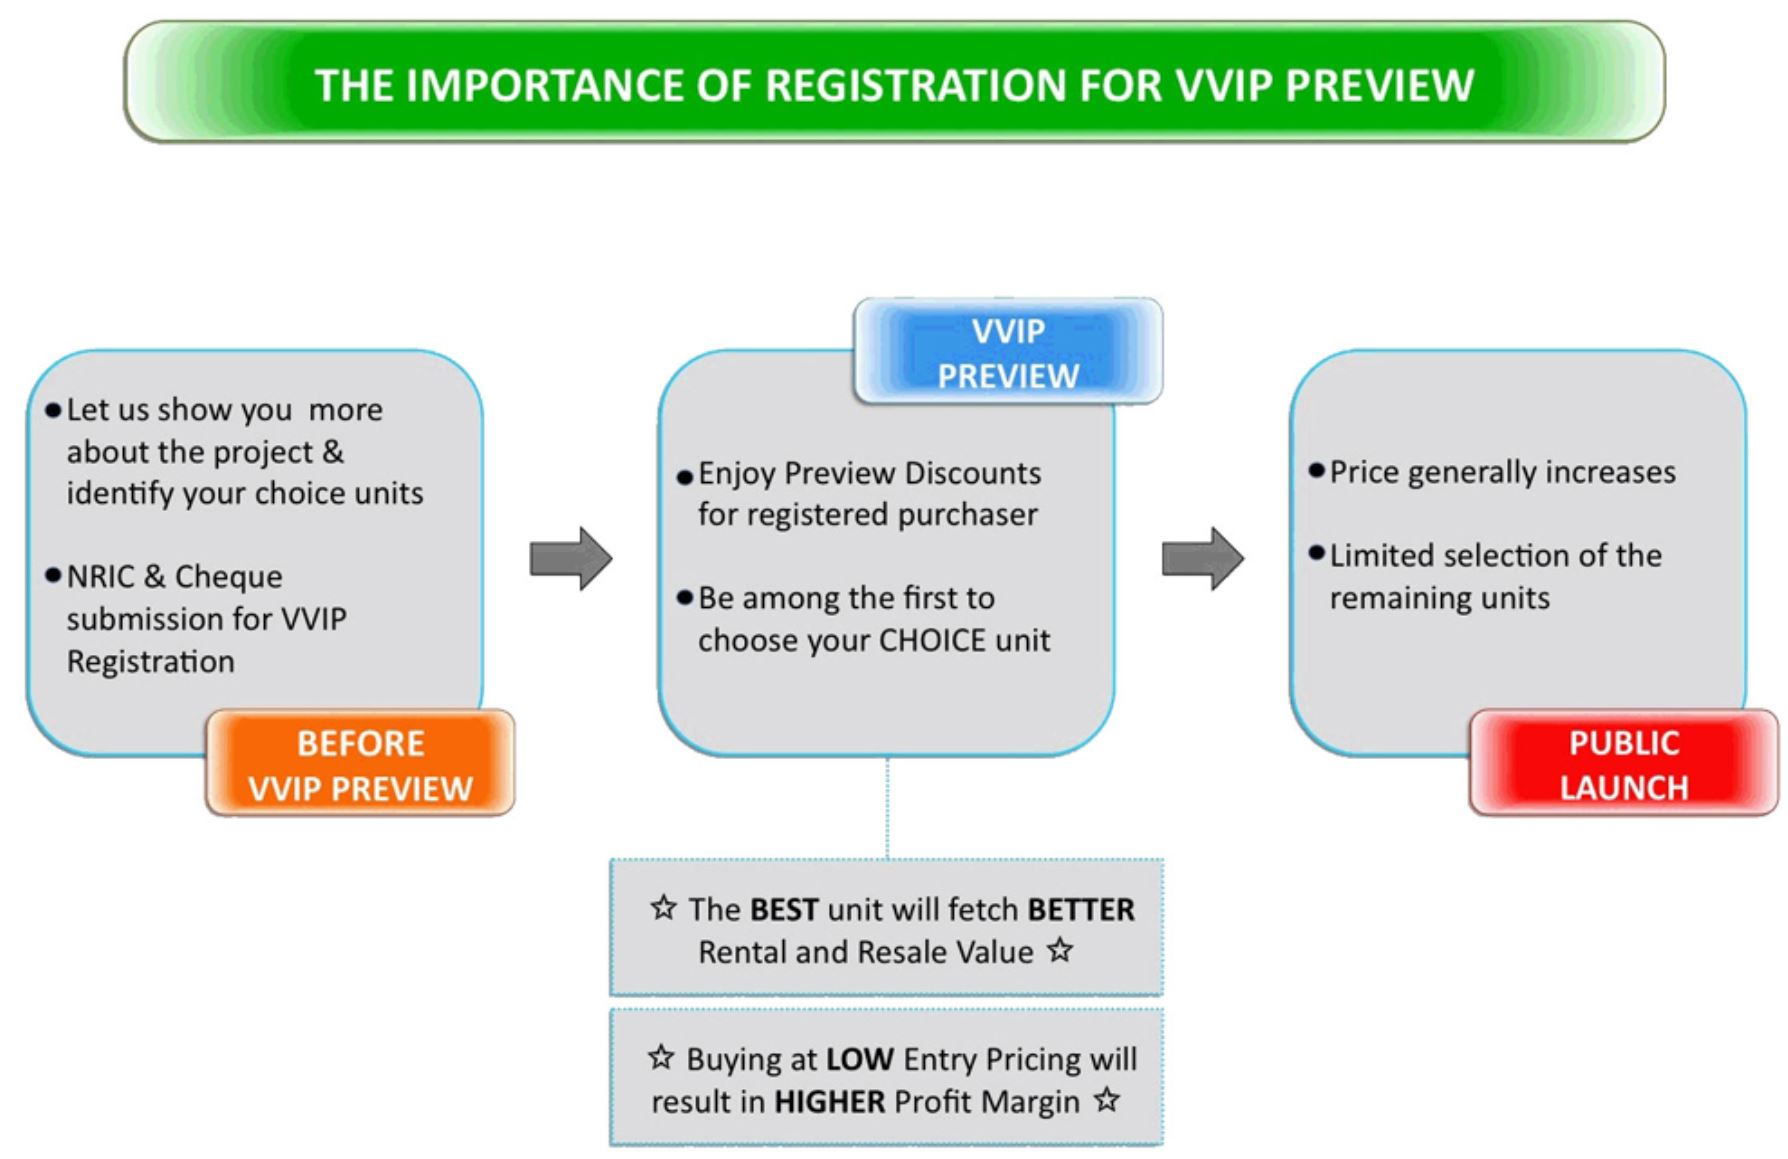 VVIP Preview